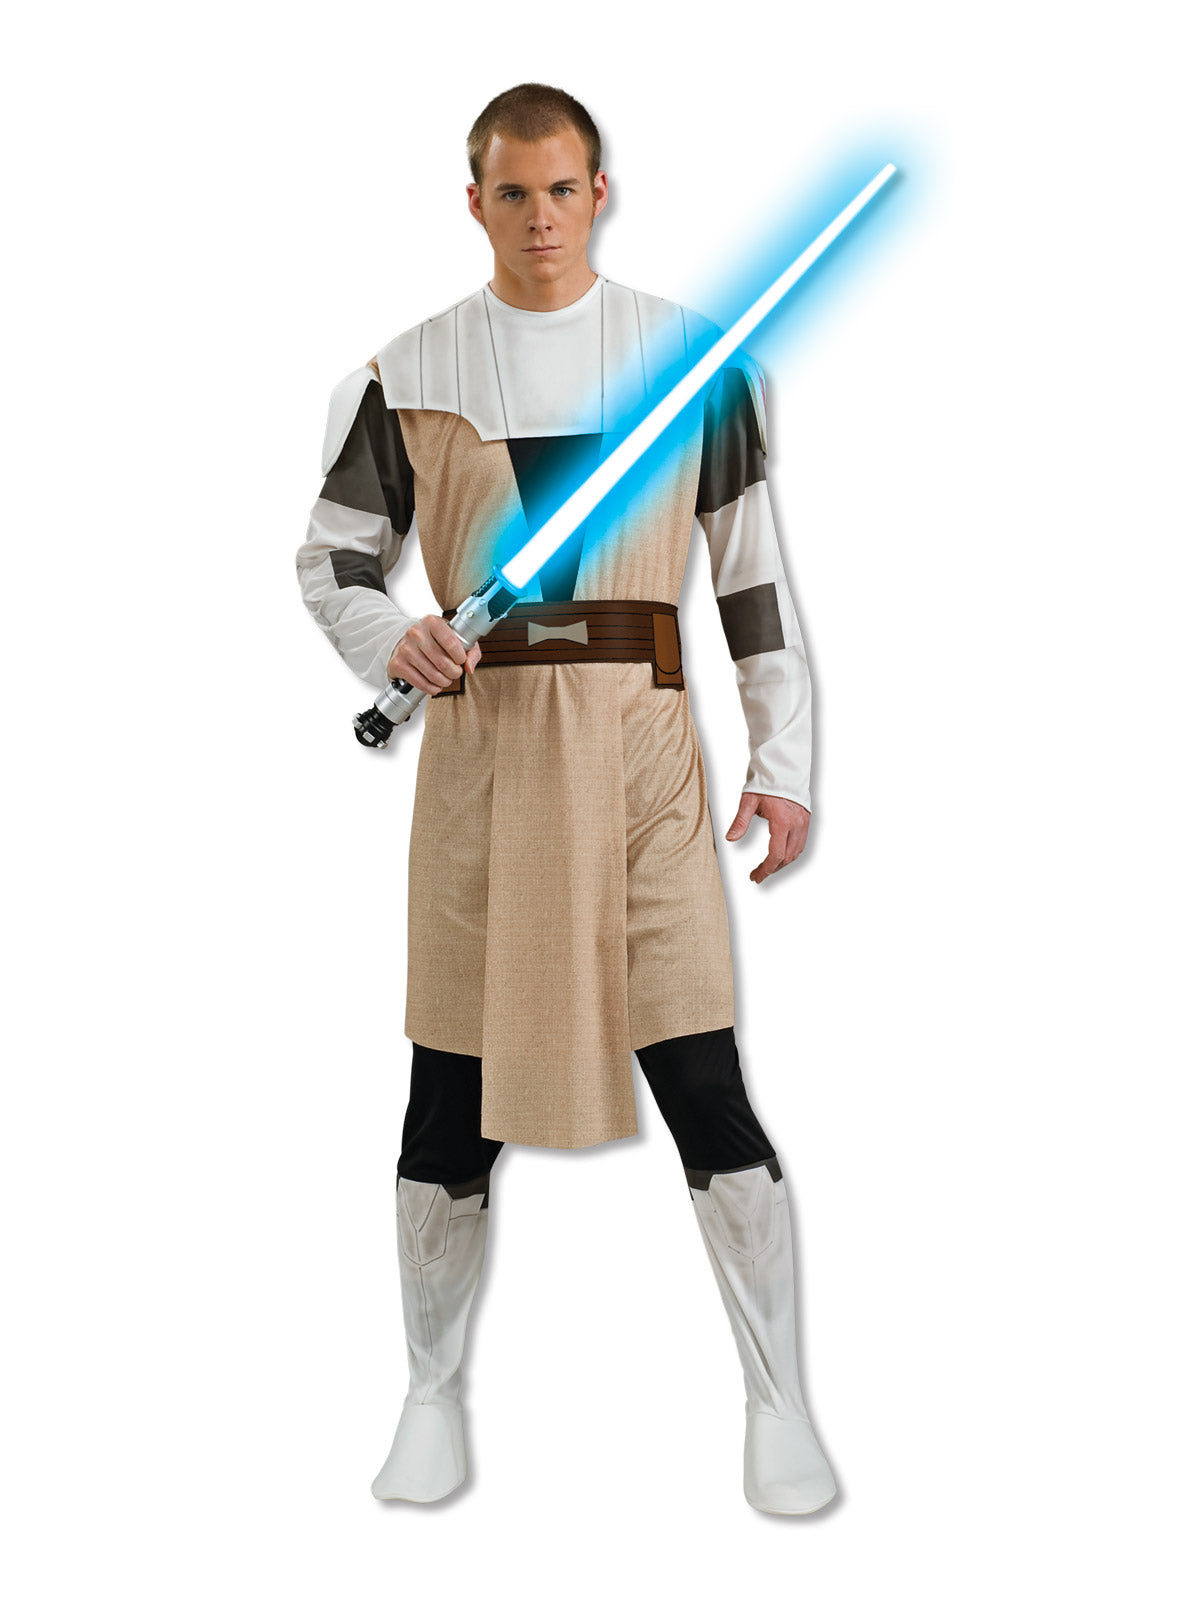 Obi Wan Kenobi Costume - Shop Online Only